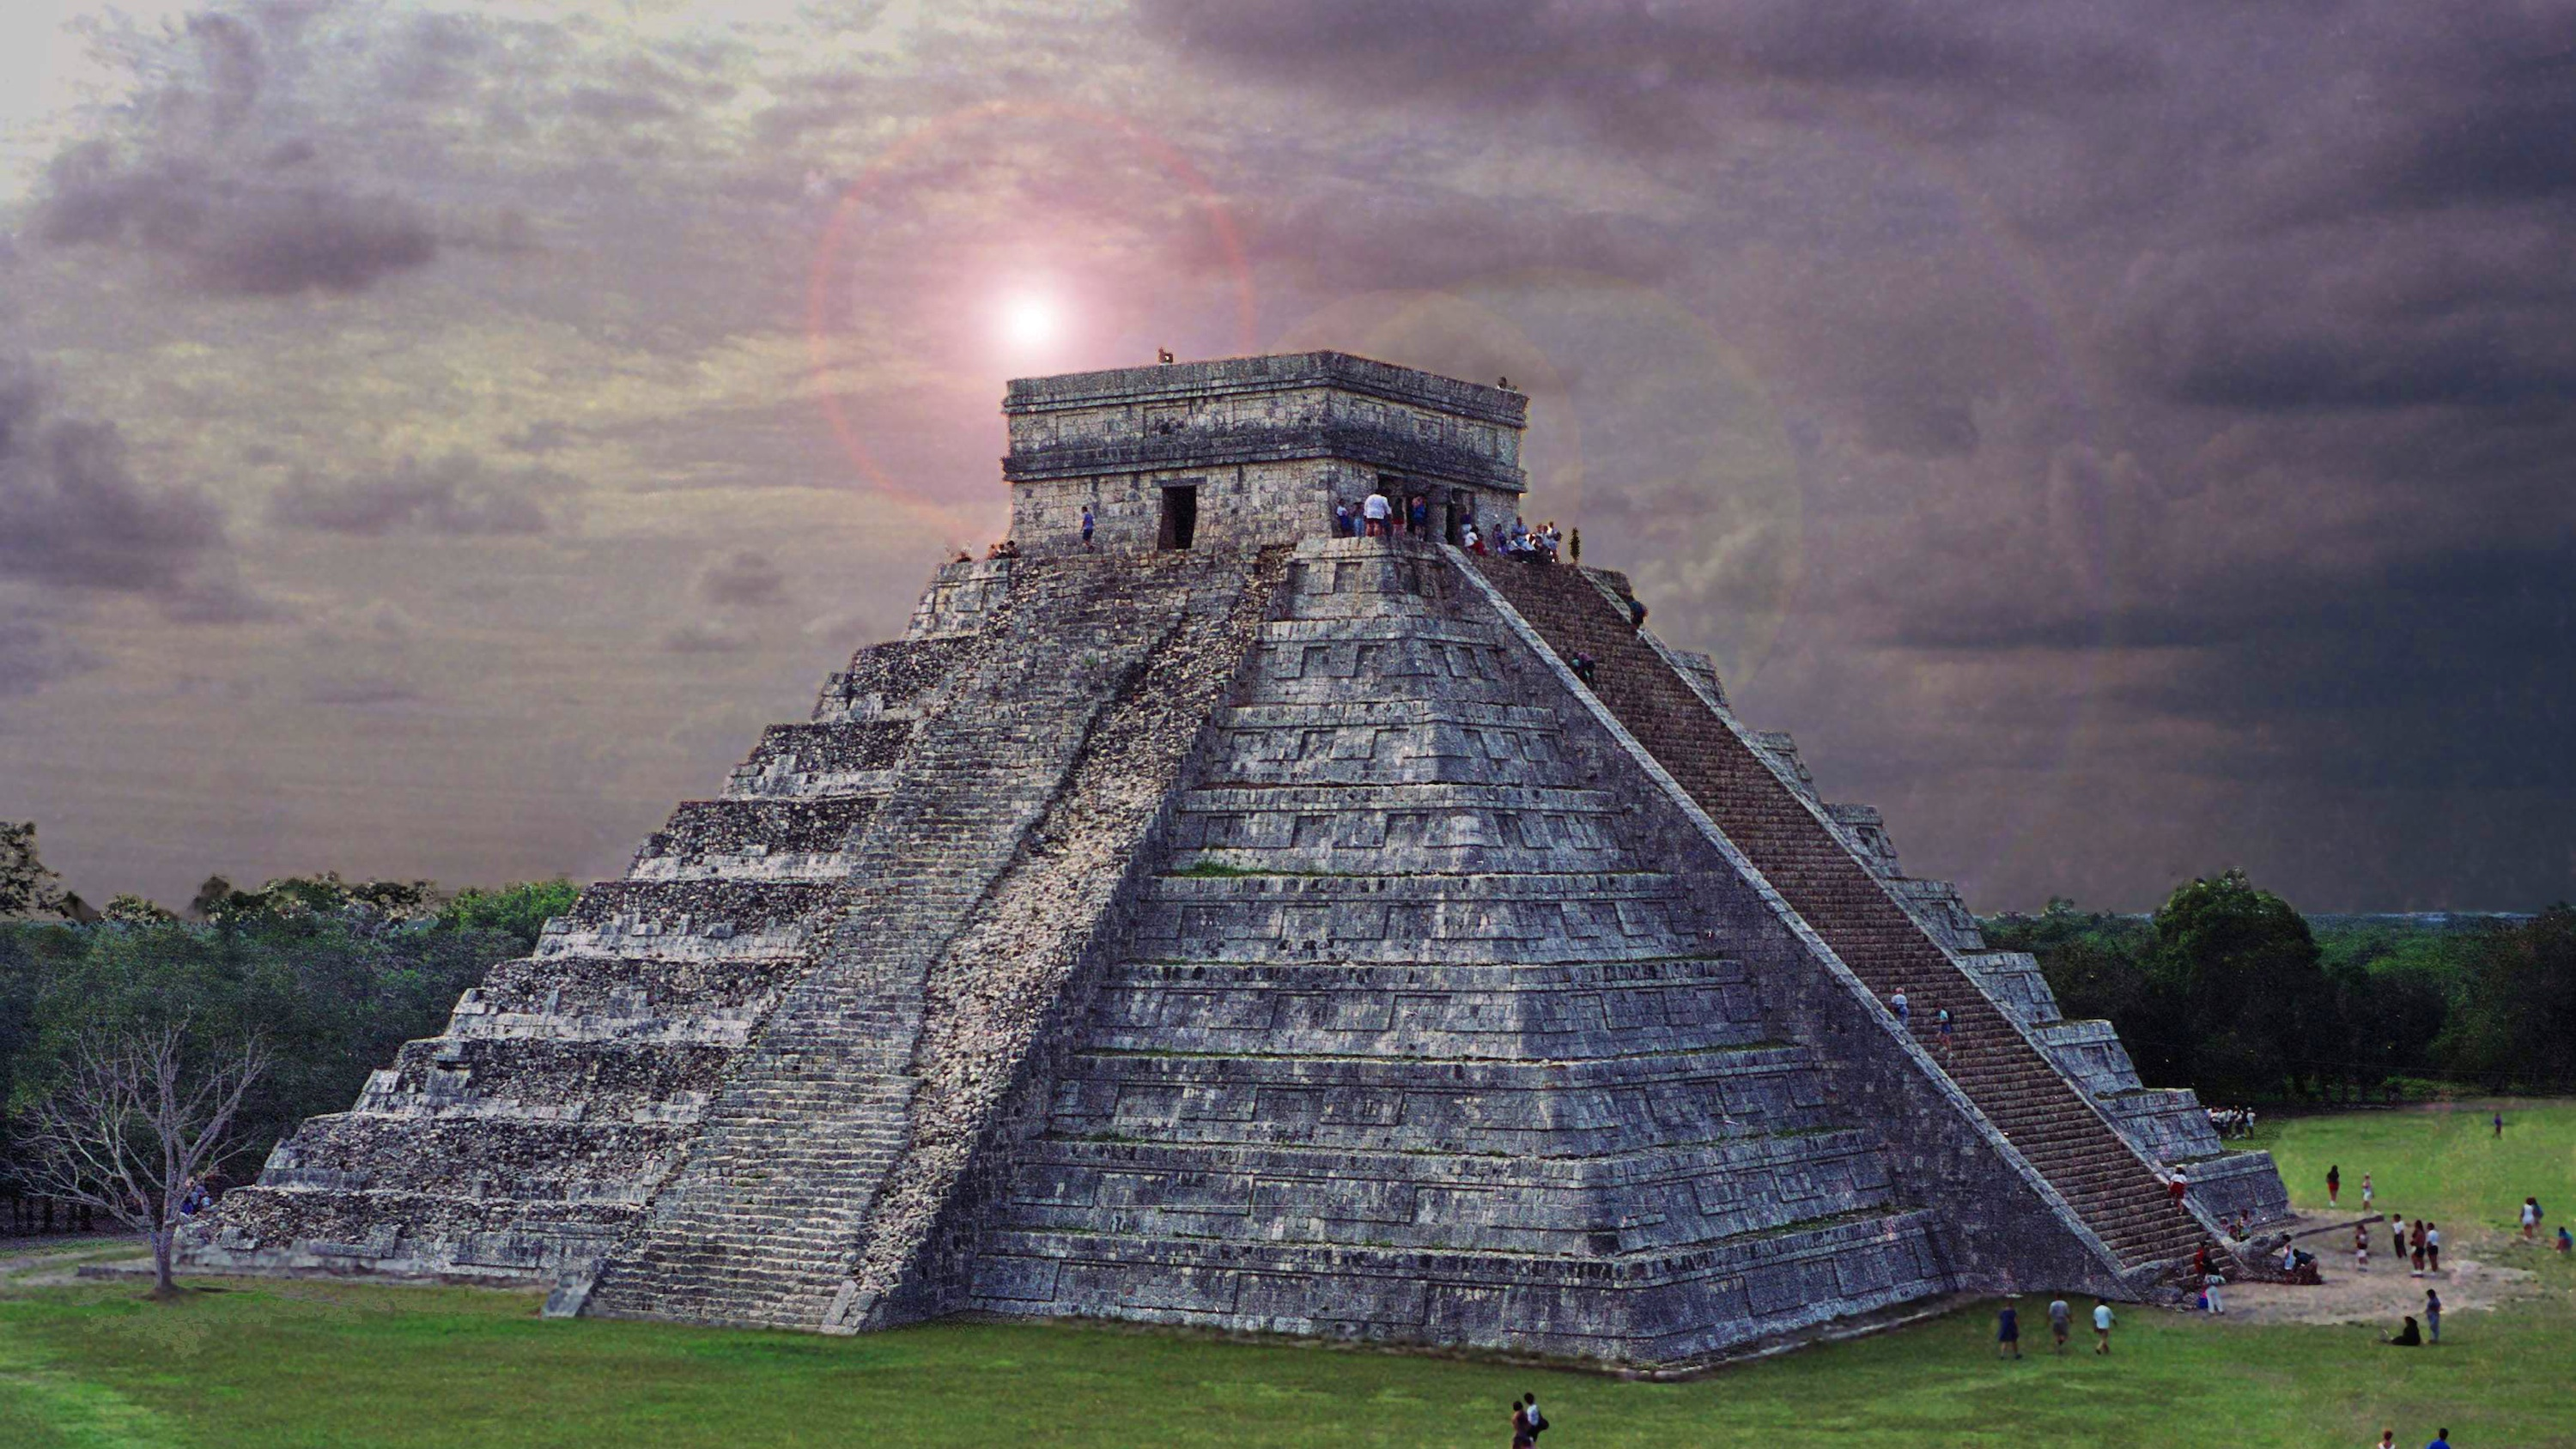 The sun set on the Aztec empire for some interesting reasons.